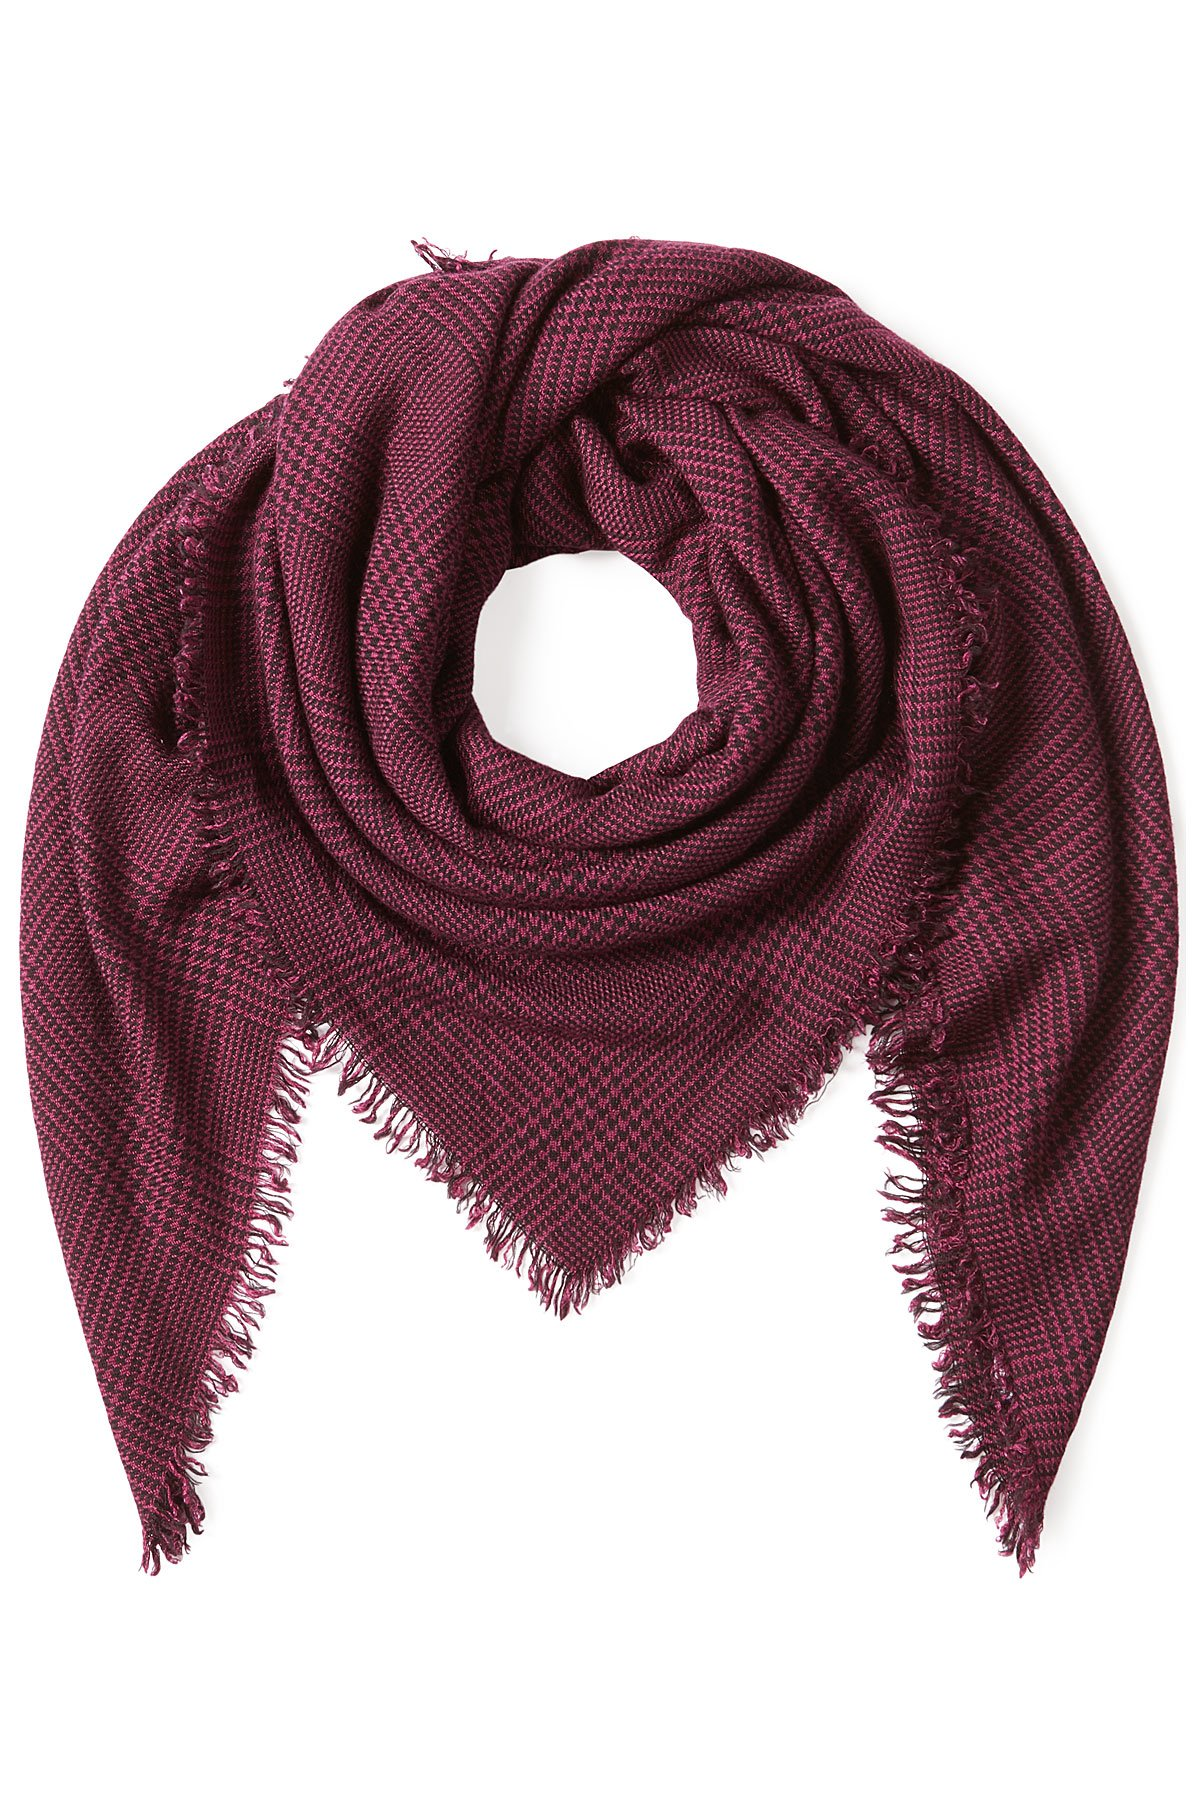 faliero sarti printed scarf with wool and